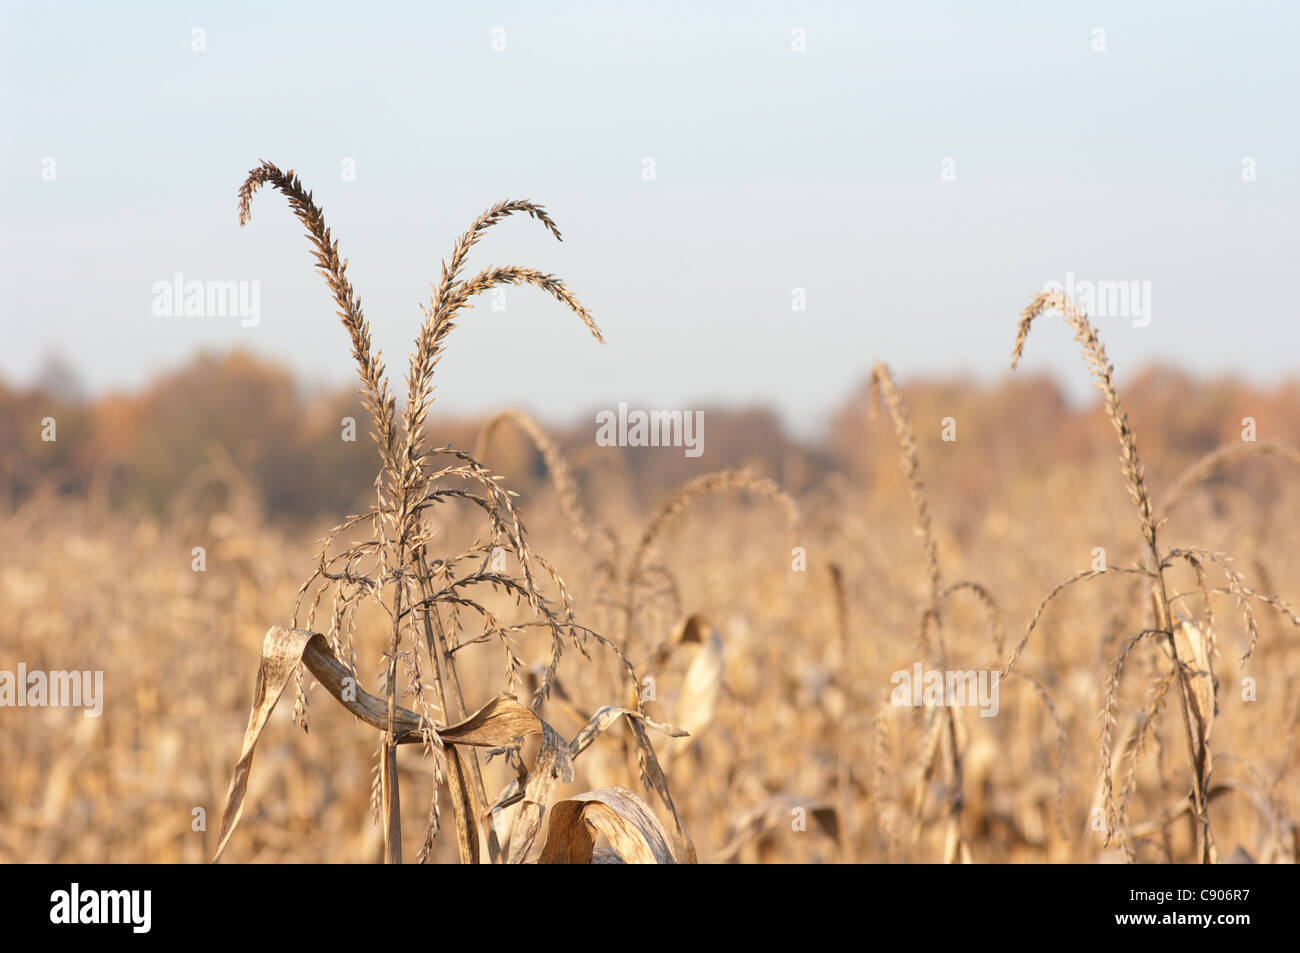 Ears of corn in the sun. - Stock Image